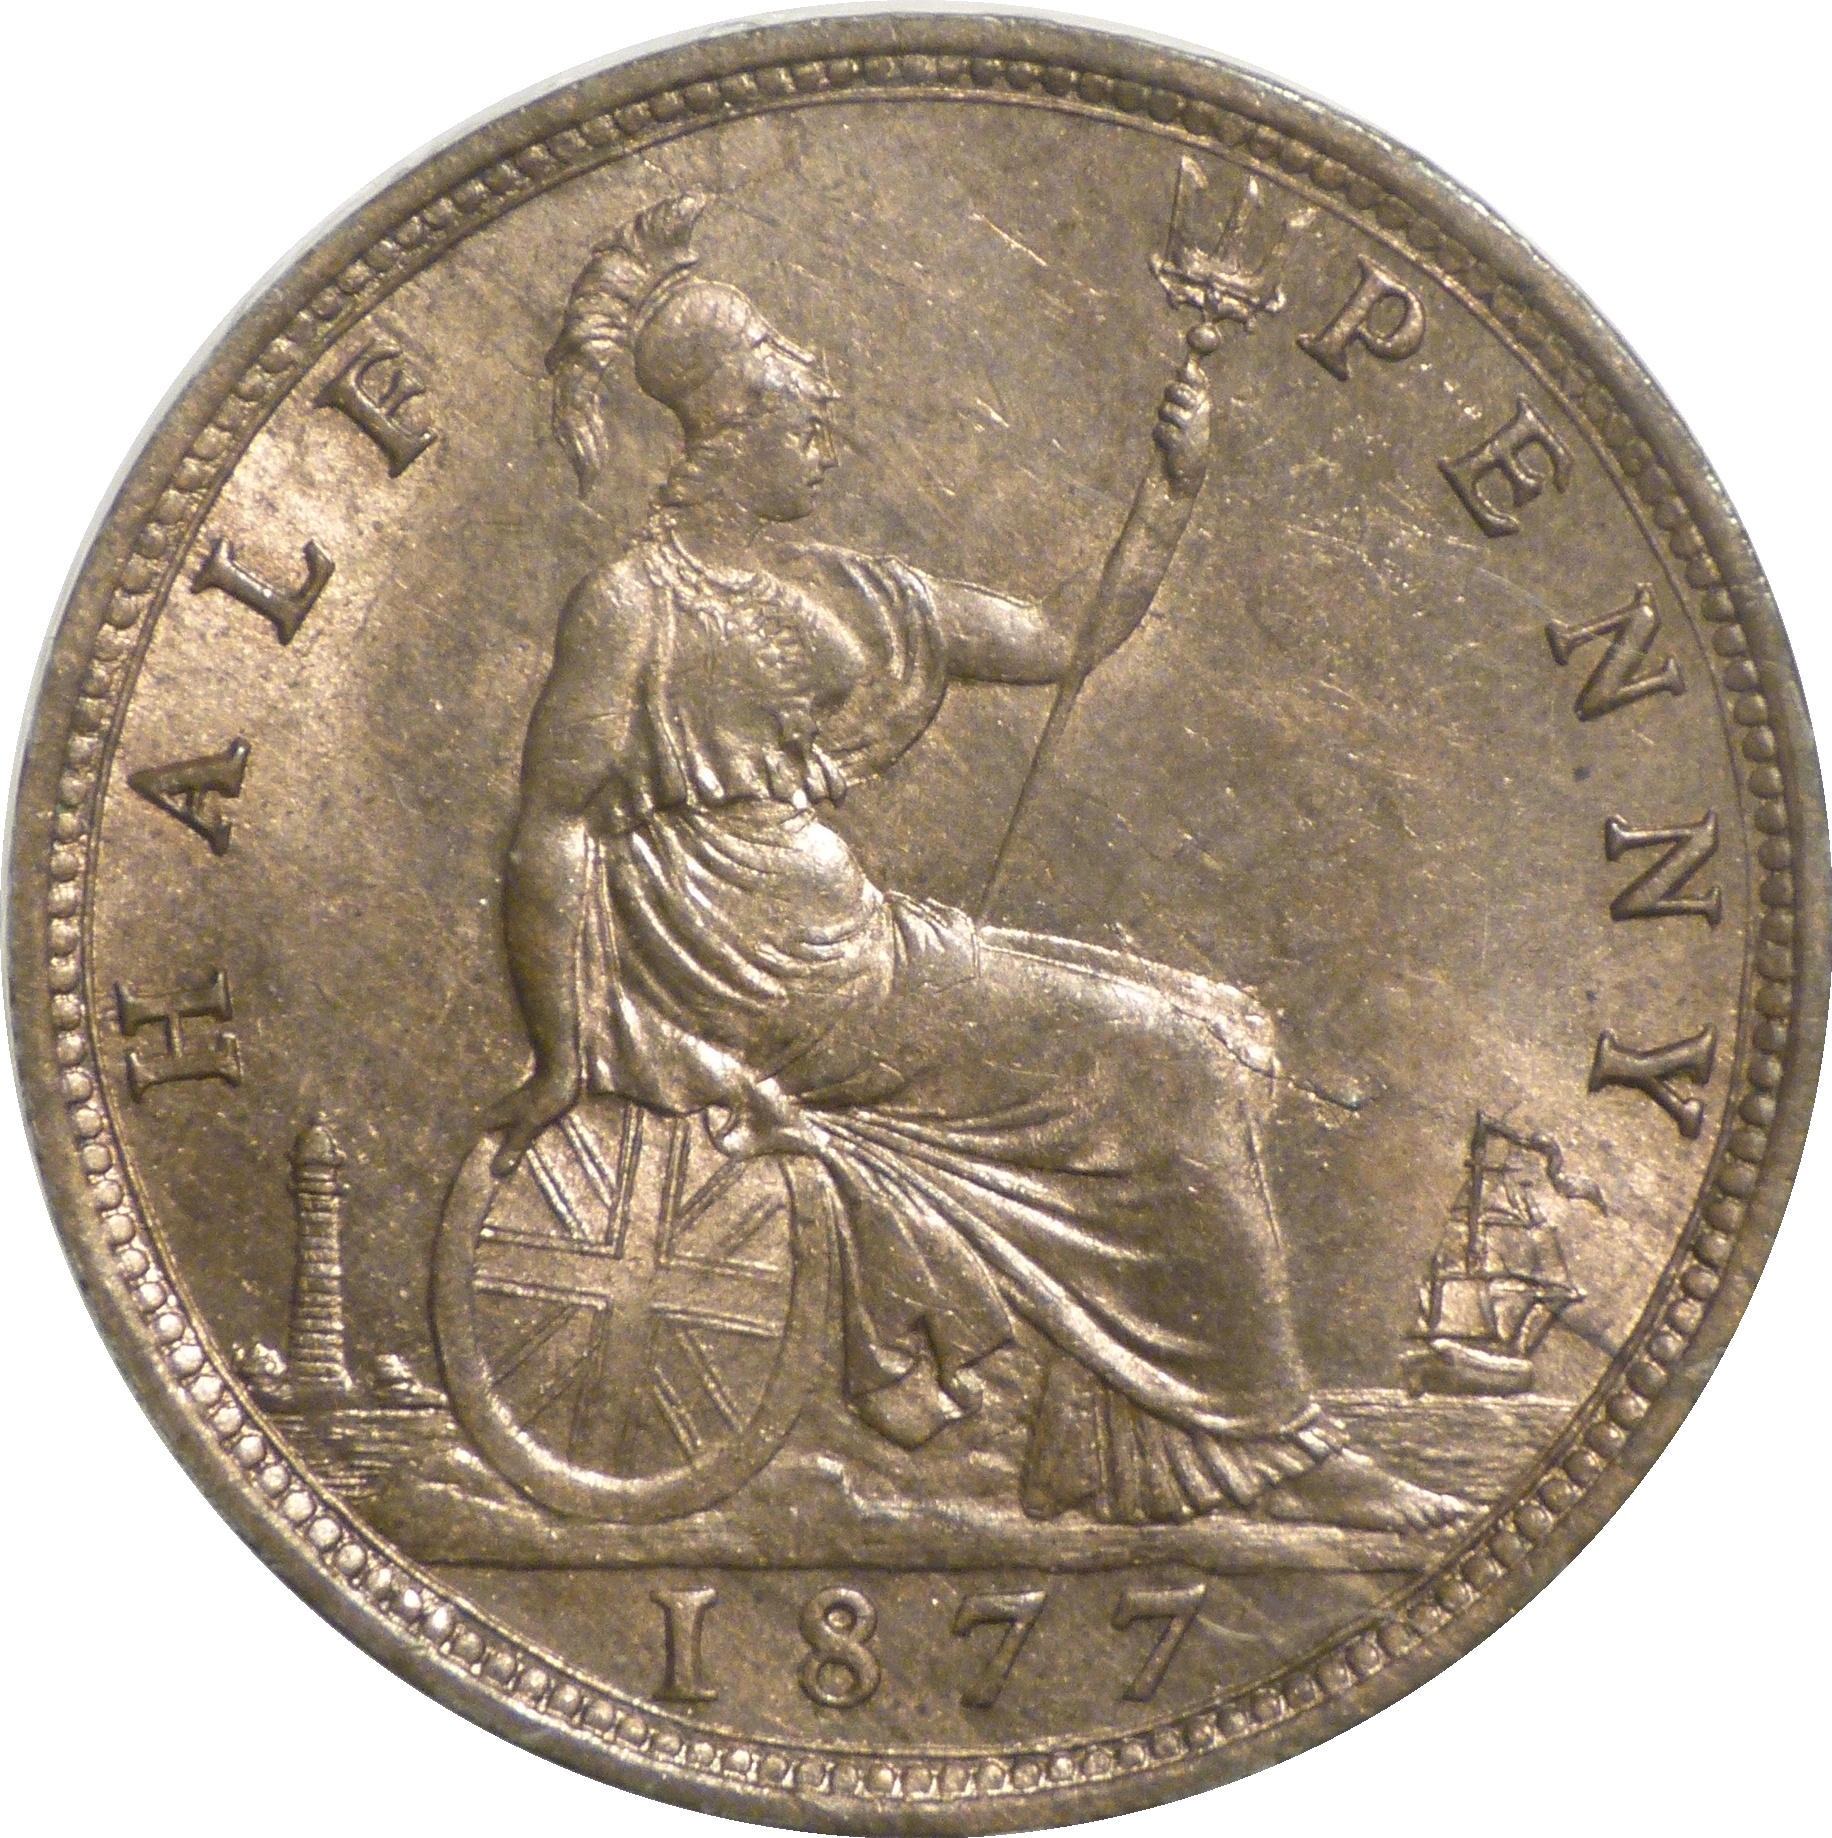 1877 halfpenny, UNC, Victoria. damaged flan, Freeman 333, Dies 14+N, FB auction